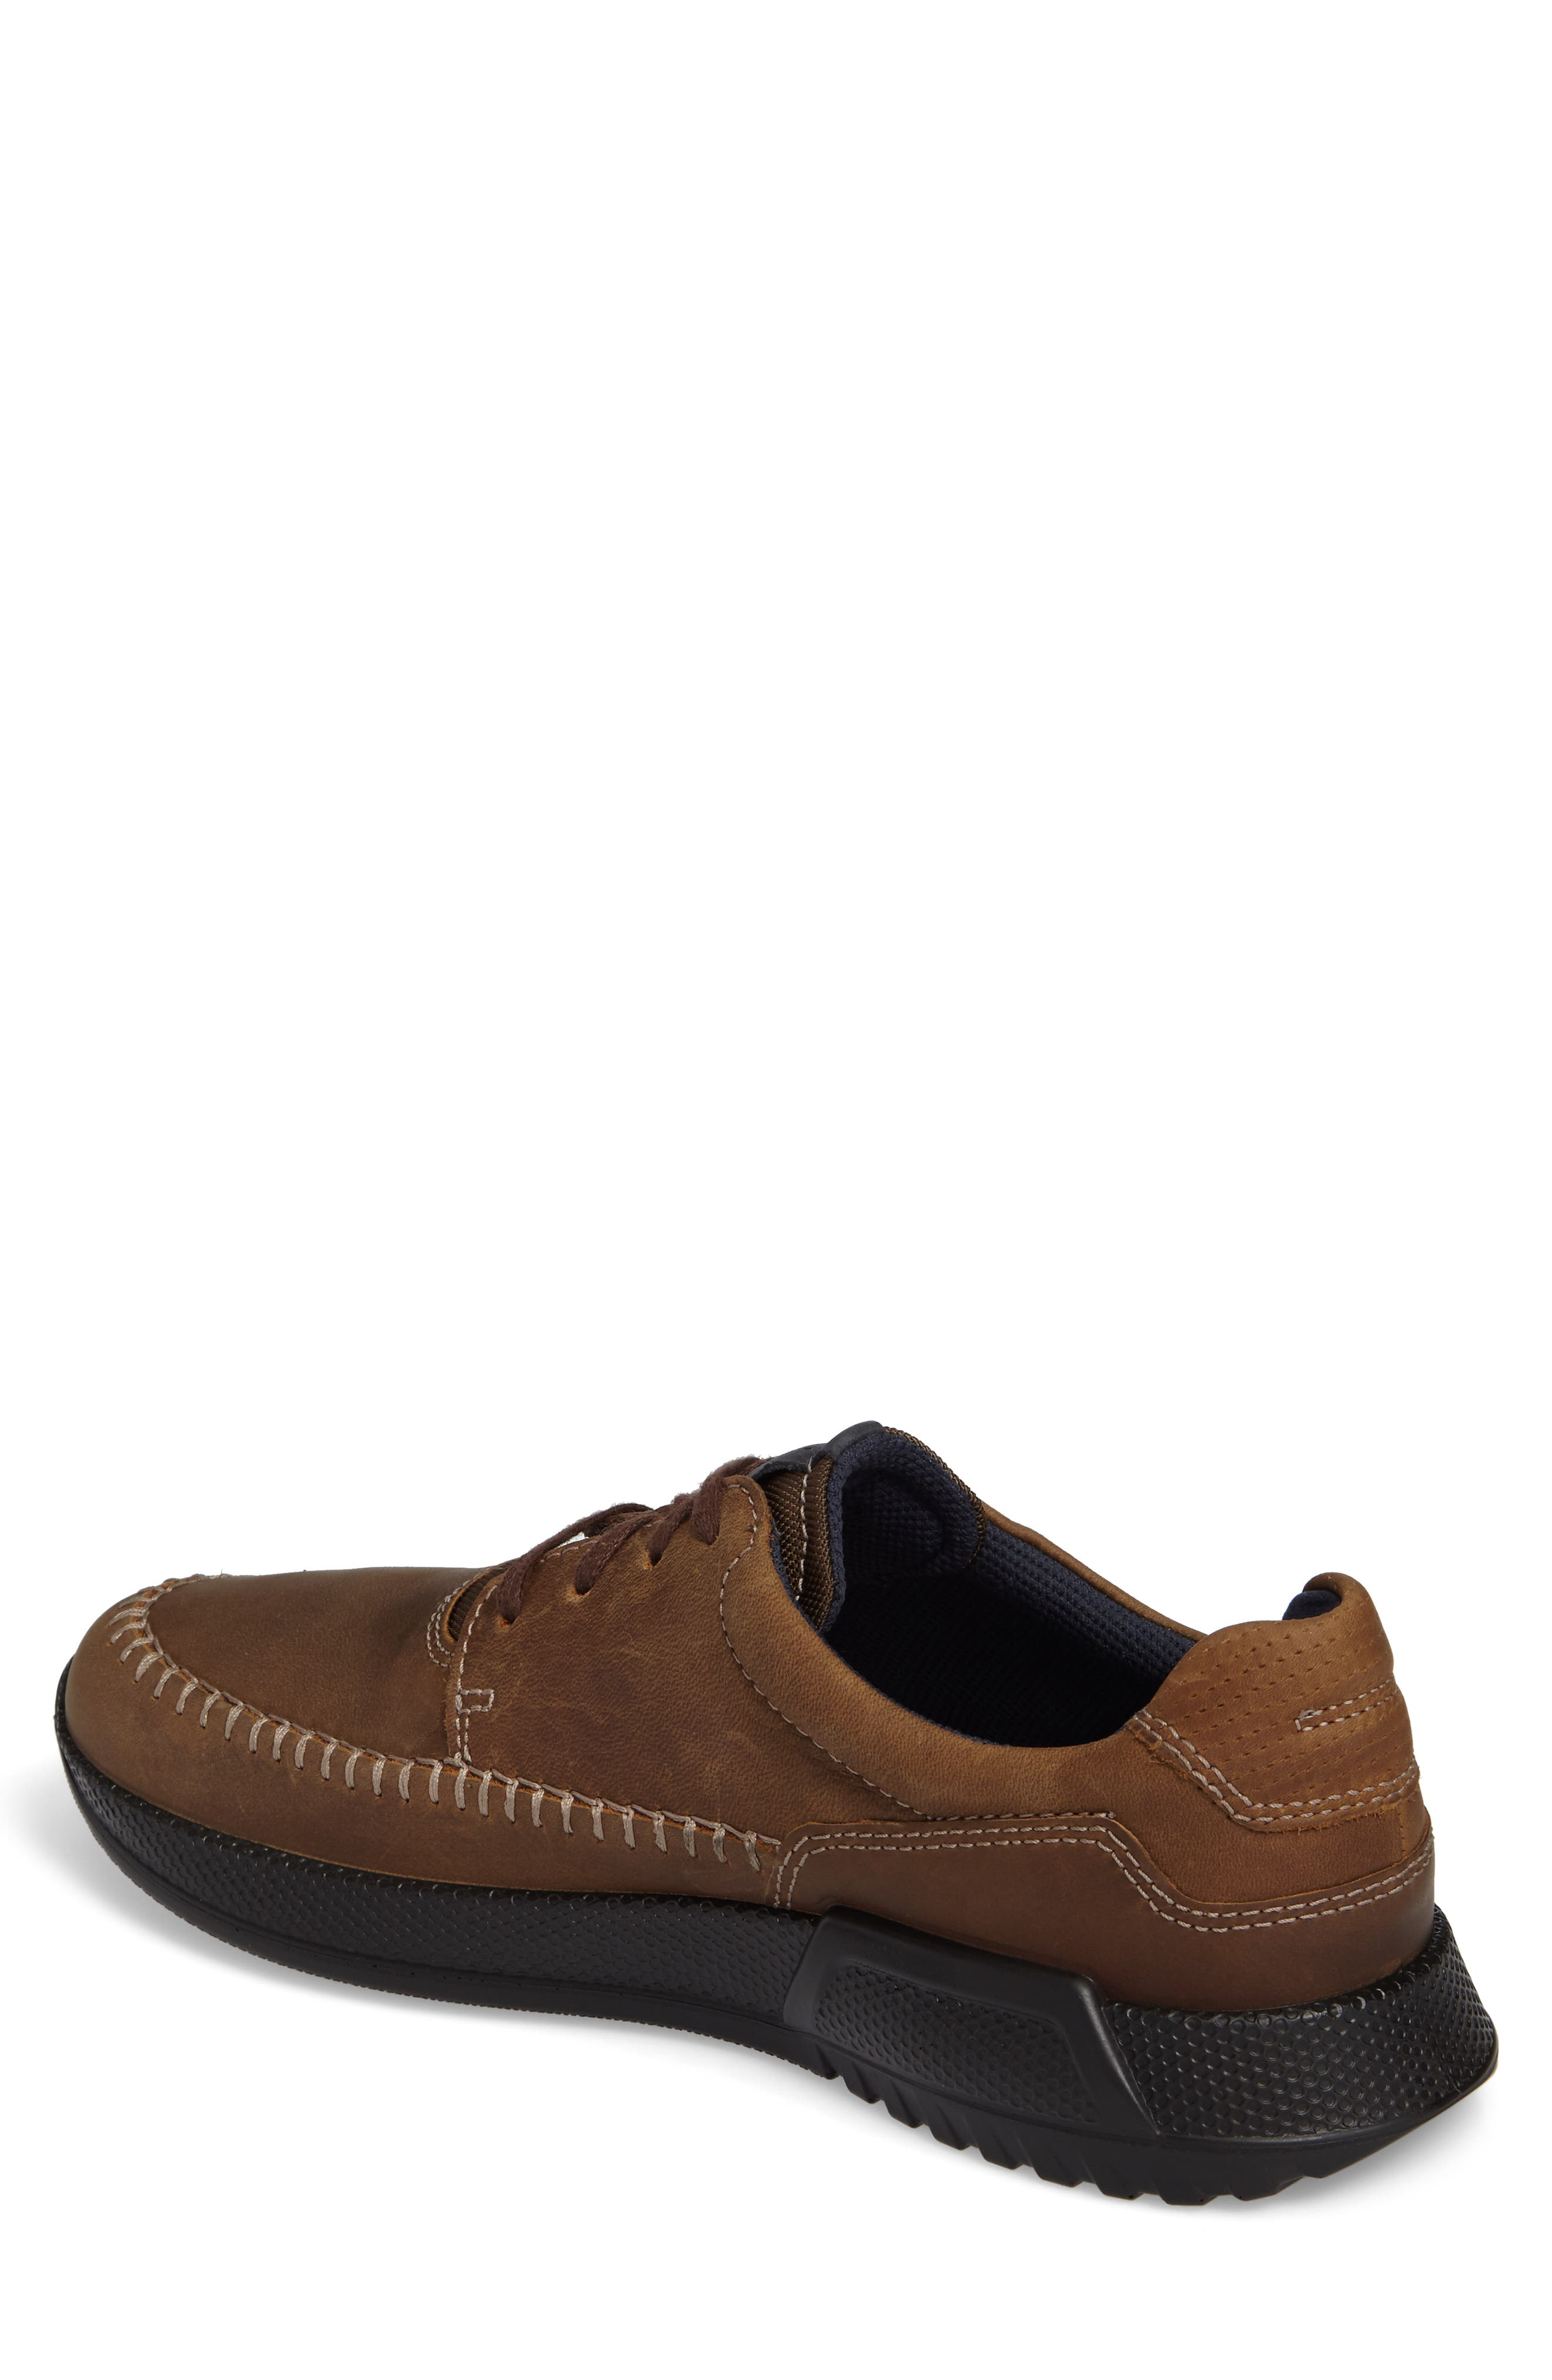 Alternate Image 2  - ECCO Luca Moc Toe Oxford (Men)